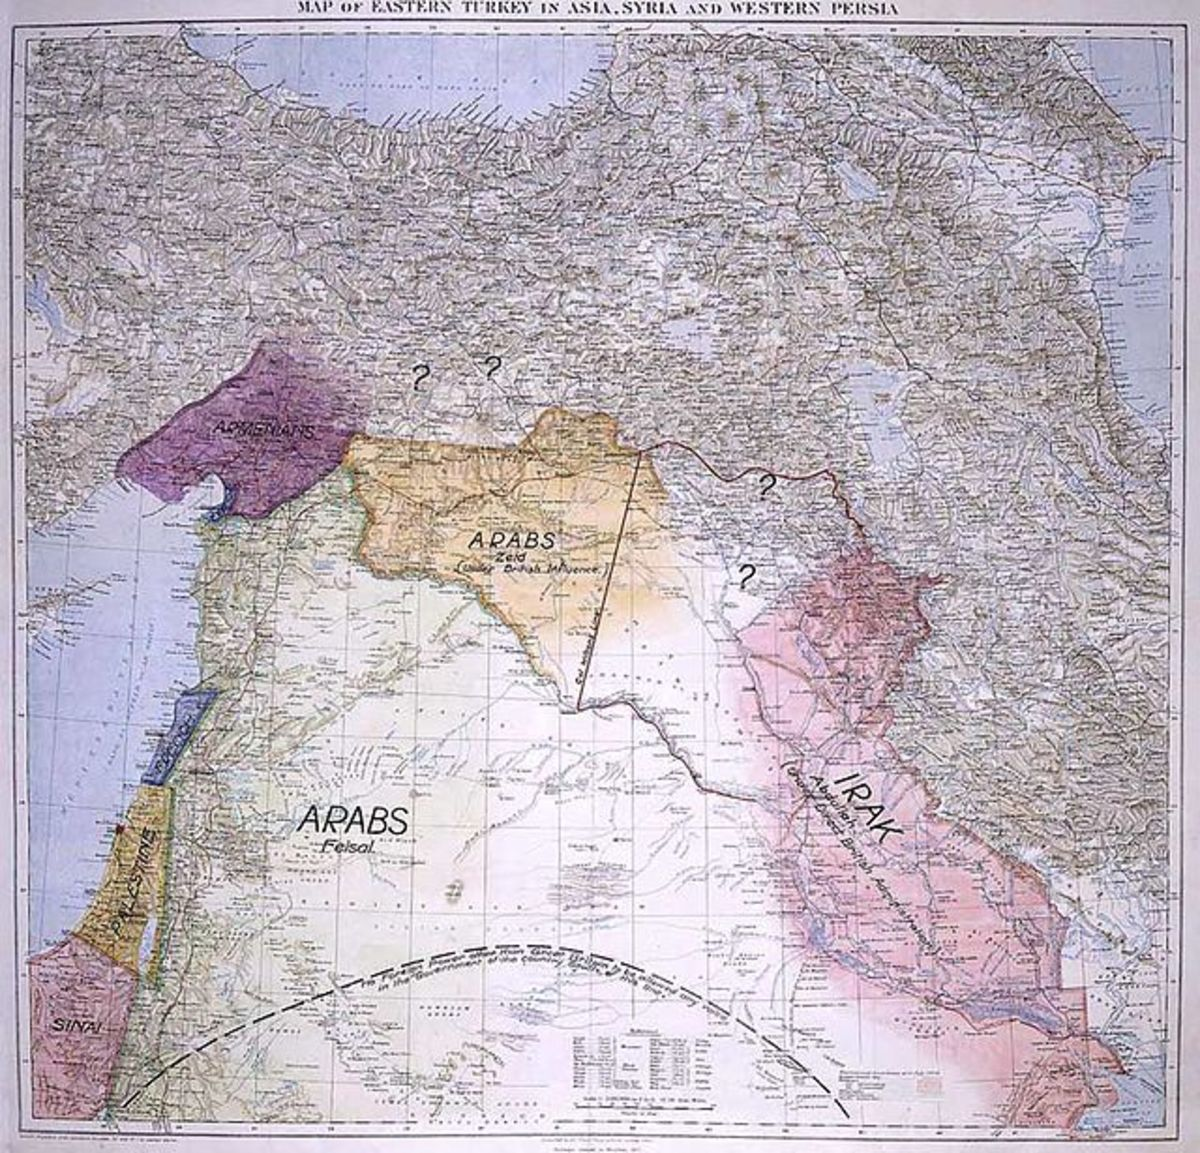 The map looks harmless enough, but the pretty colored paper can't tell the troubled history.